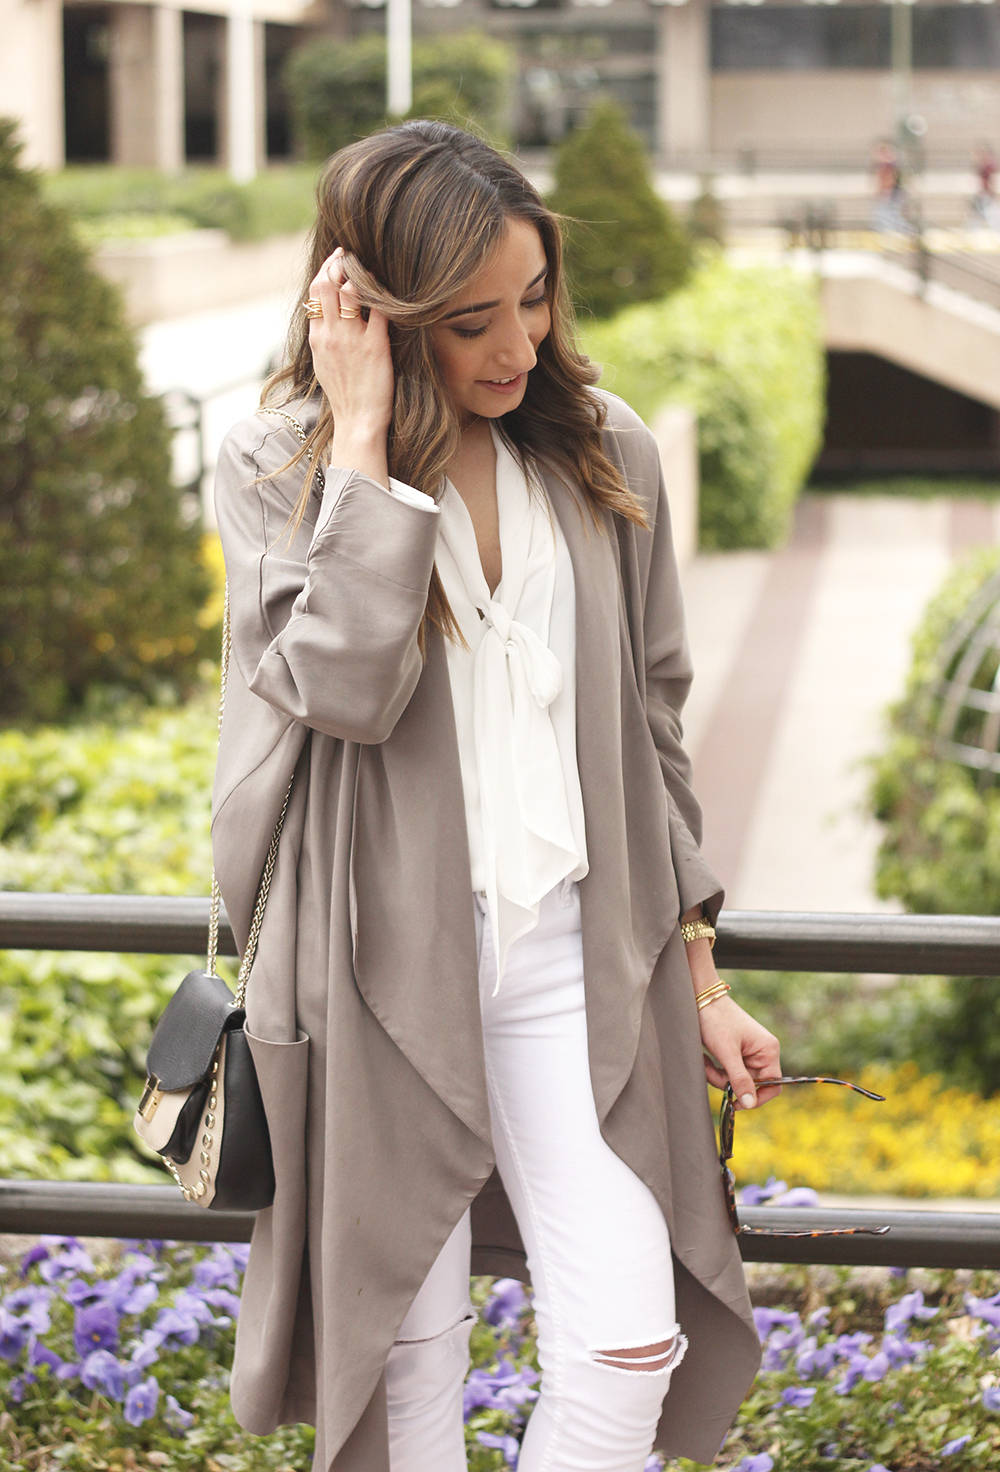 grey and white outfit trench spring streetstyle sunnies nude heels ripped jeans21